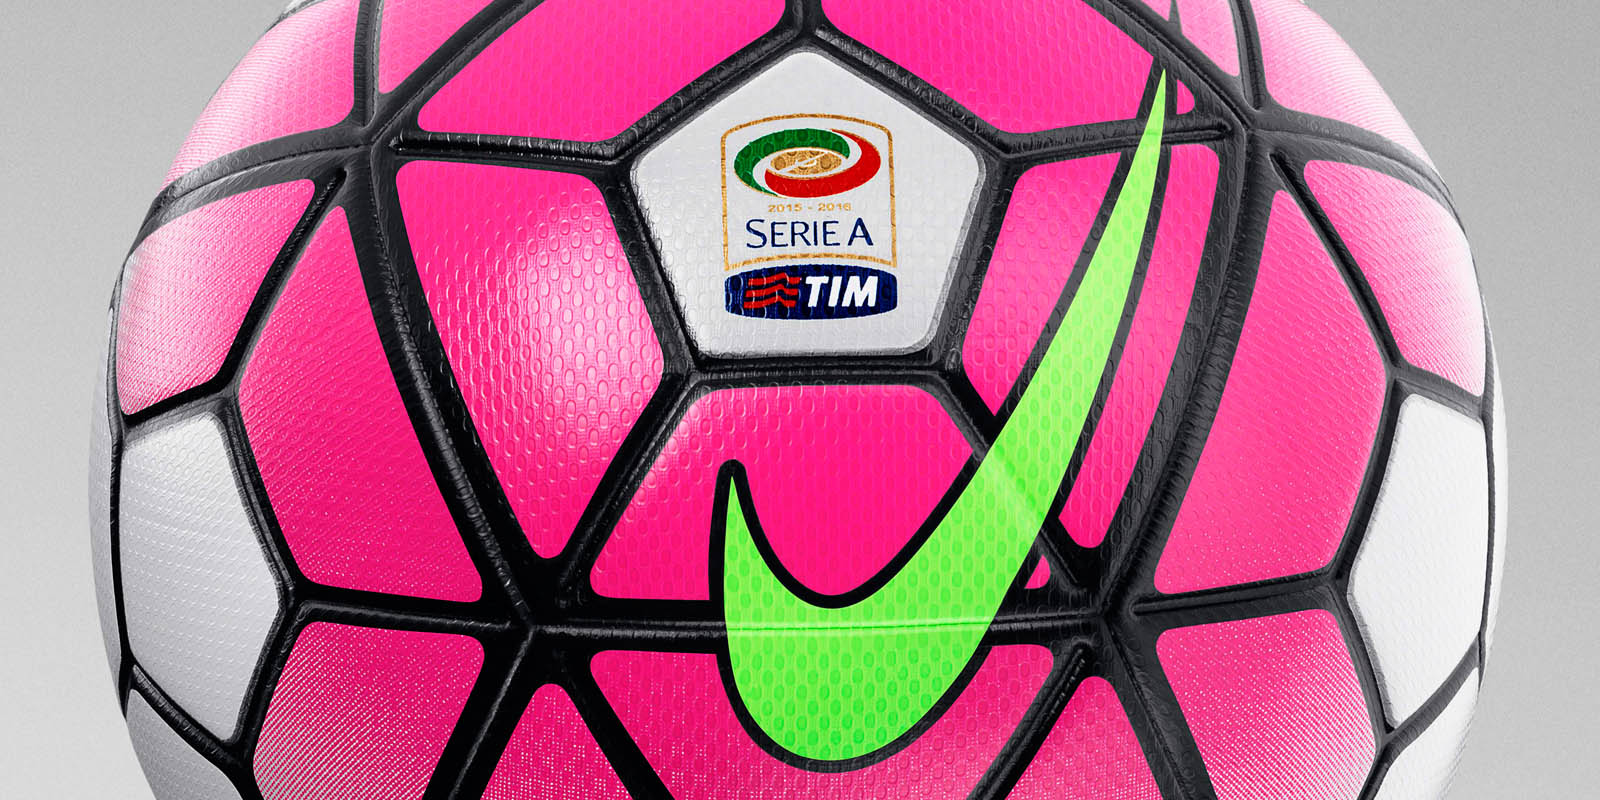 White Pink Nike Ordem Serie A 15 16 Ball Released Footy